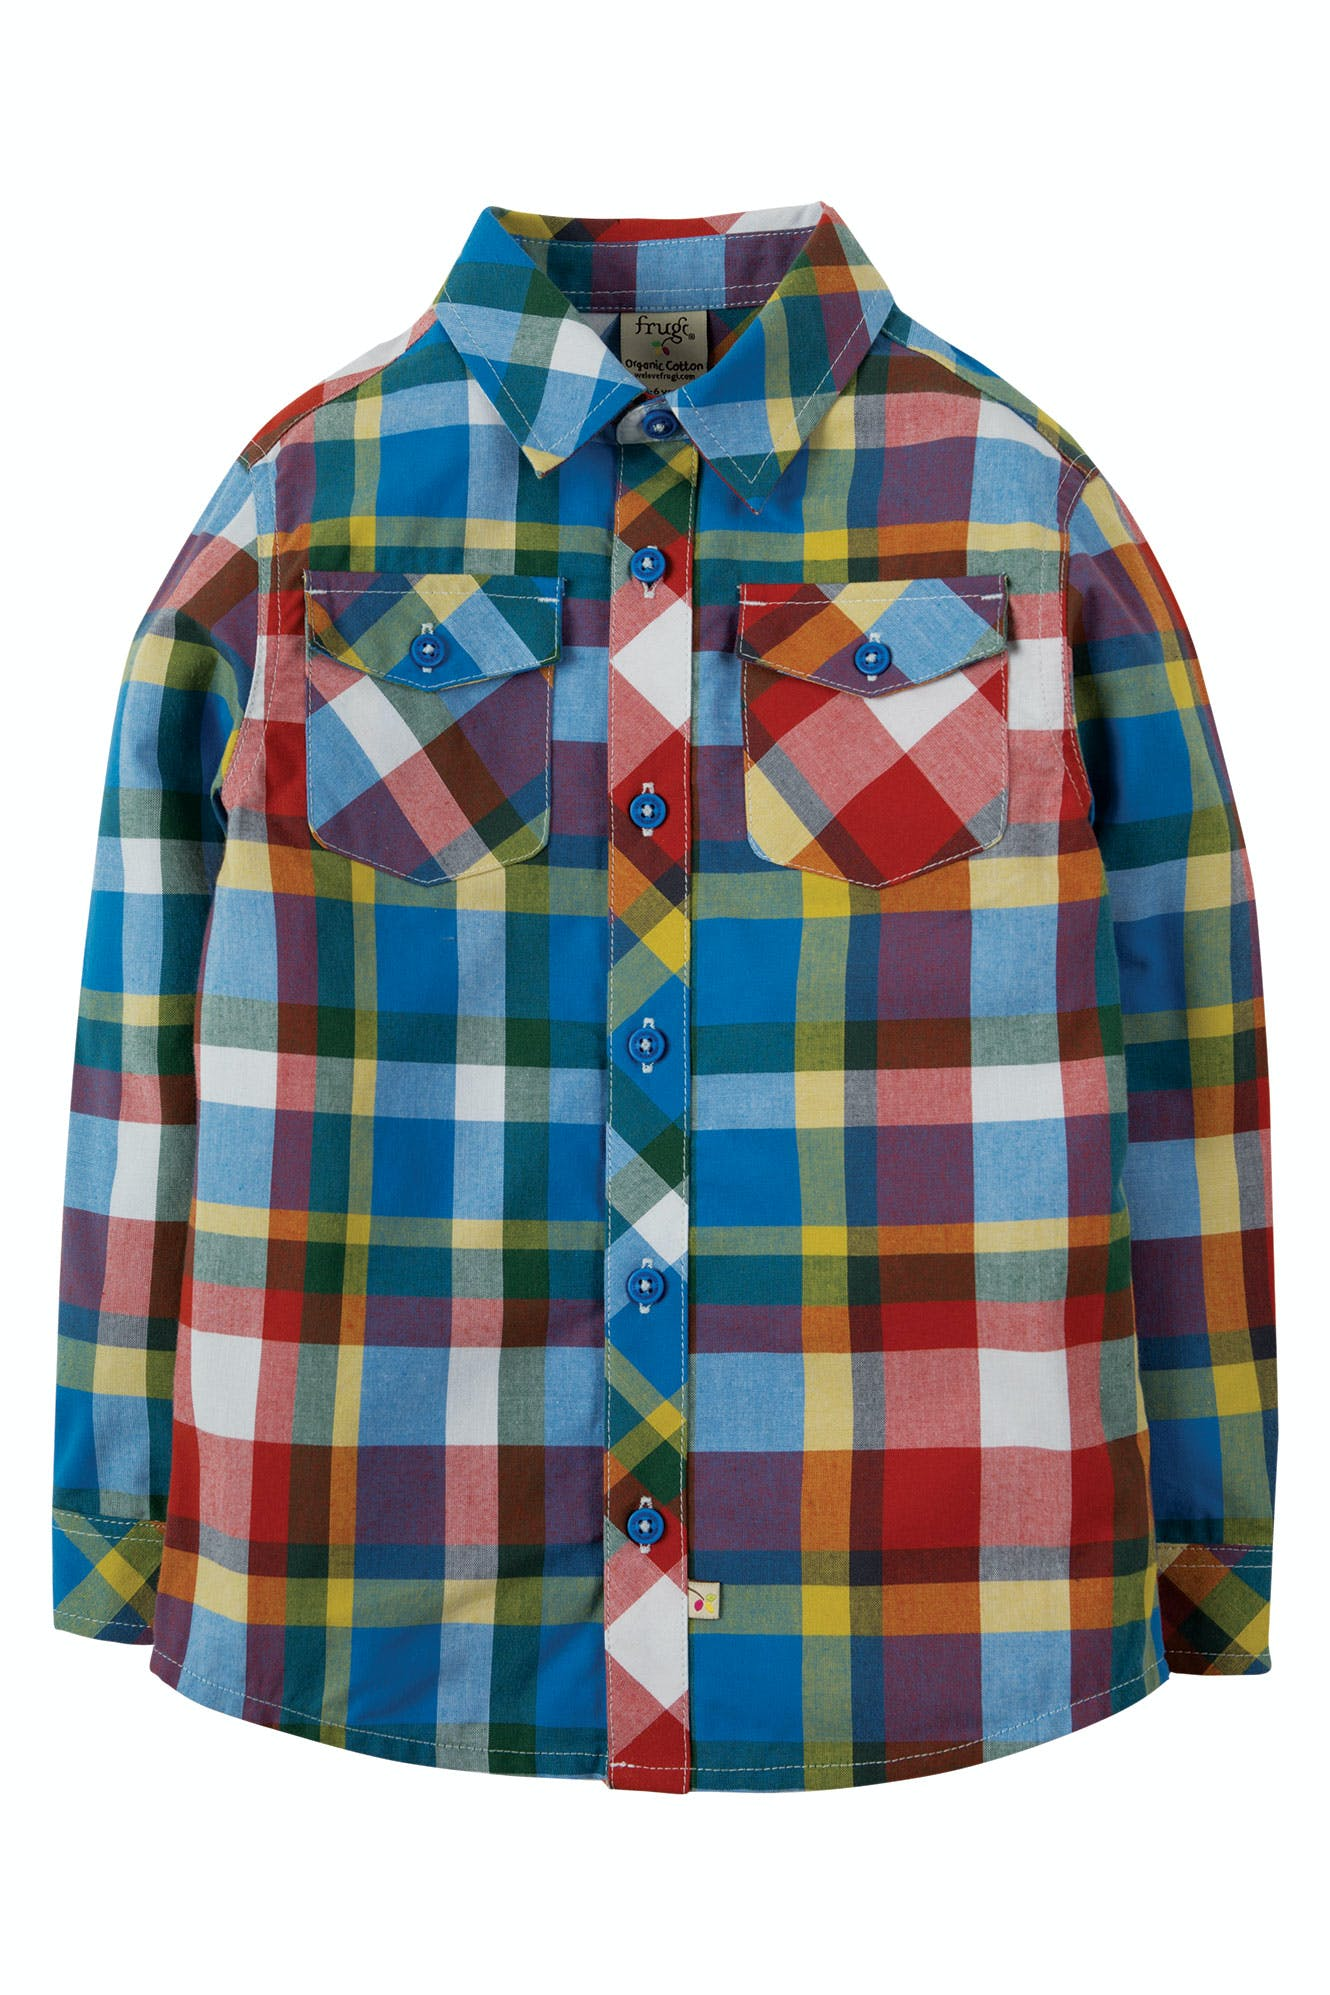 d5ec7927cb91 Hector Check Shirt | tops & t-shirts | SS19 Sale - Kids | SS19 End of  Season Sale! | special features | Frugi